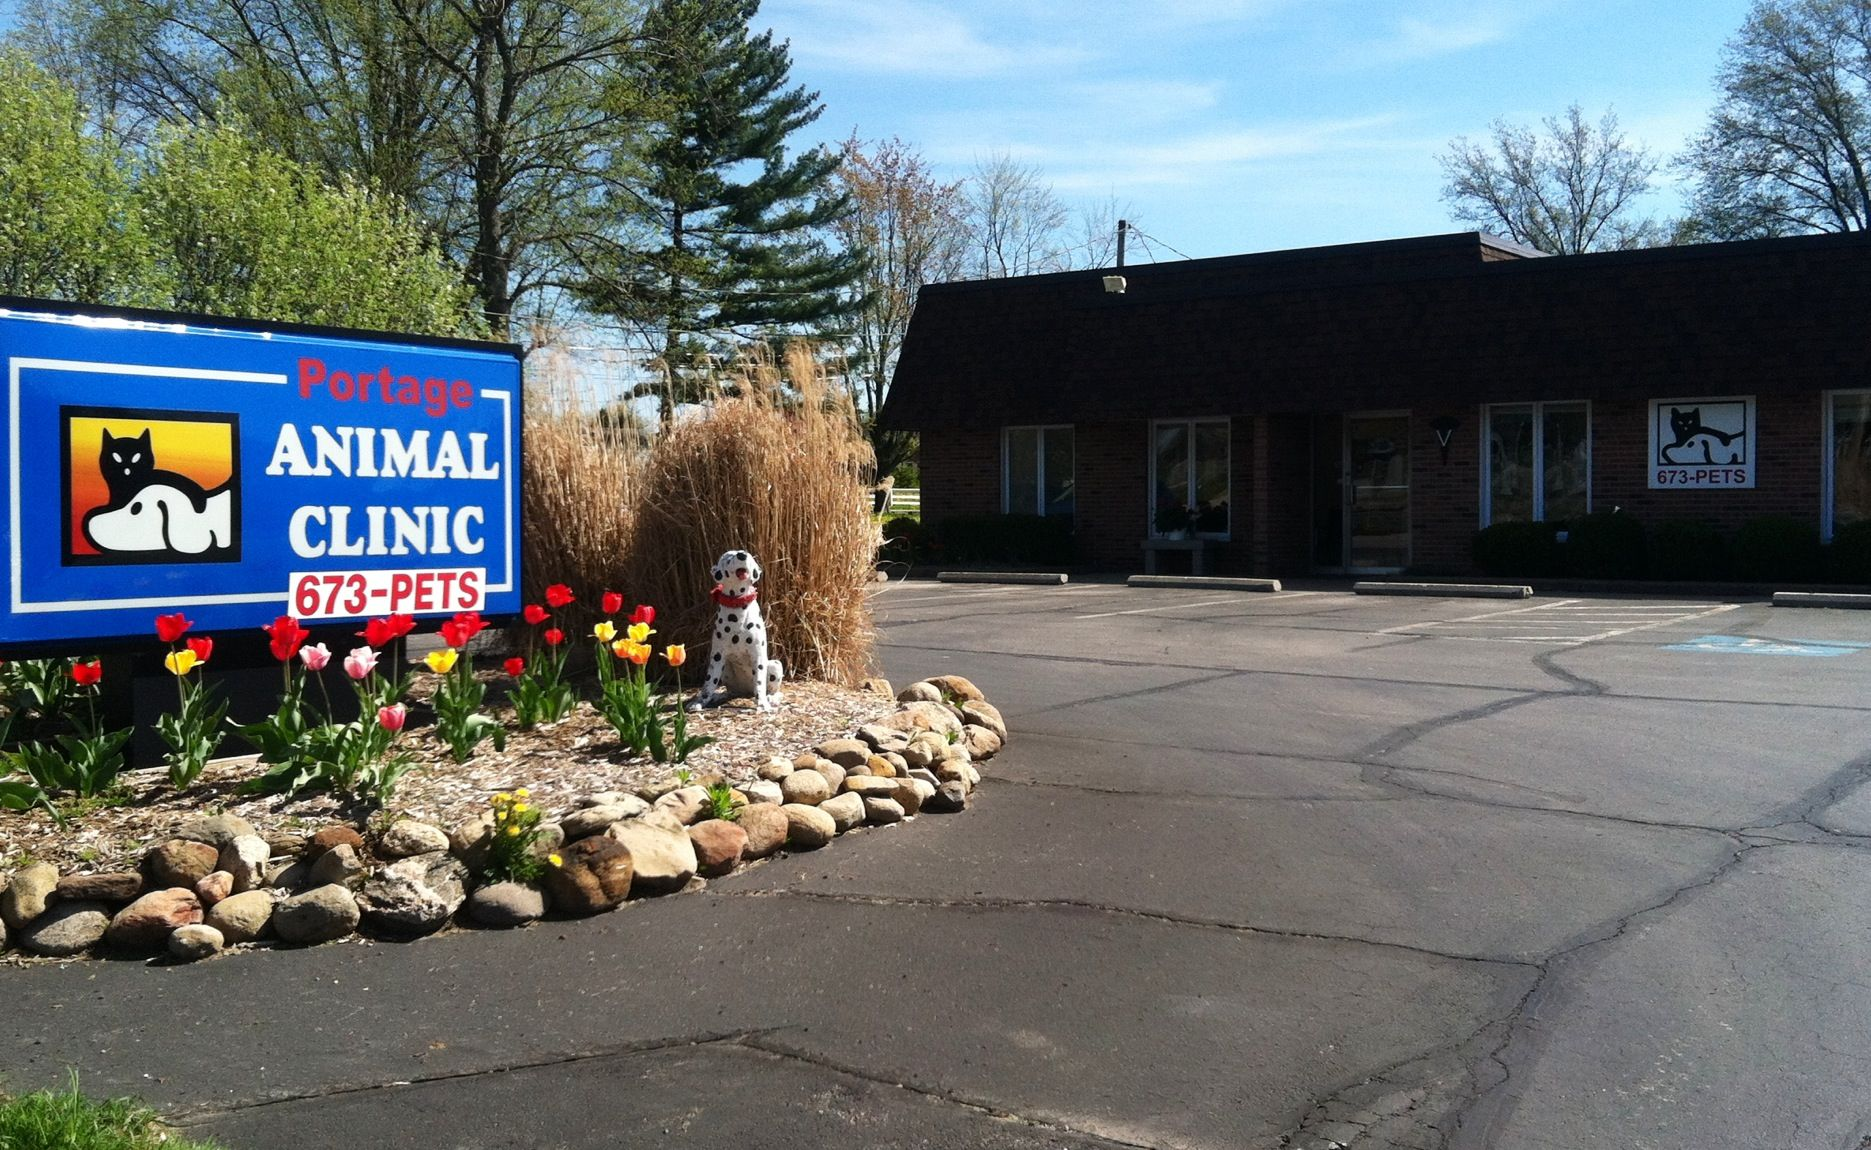 Portage Animal Clinic 4148 State Route 43 Kent Ohio 44240 Portagecounty Brimfield Pet Clinic Animal Hospital Veterinary Hospital